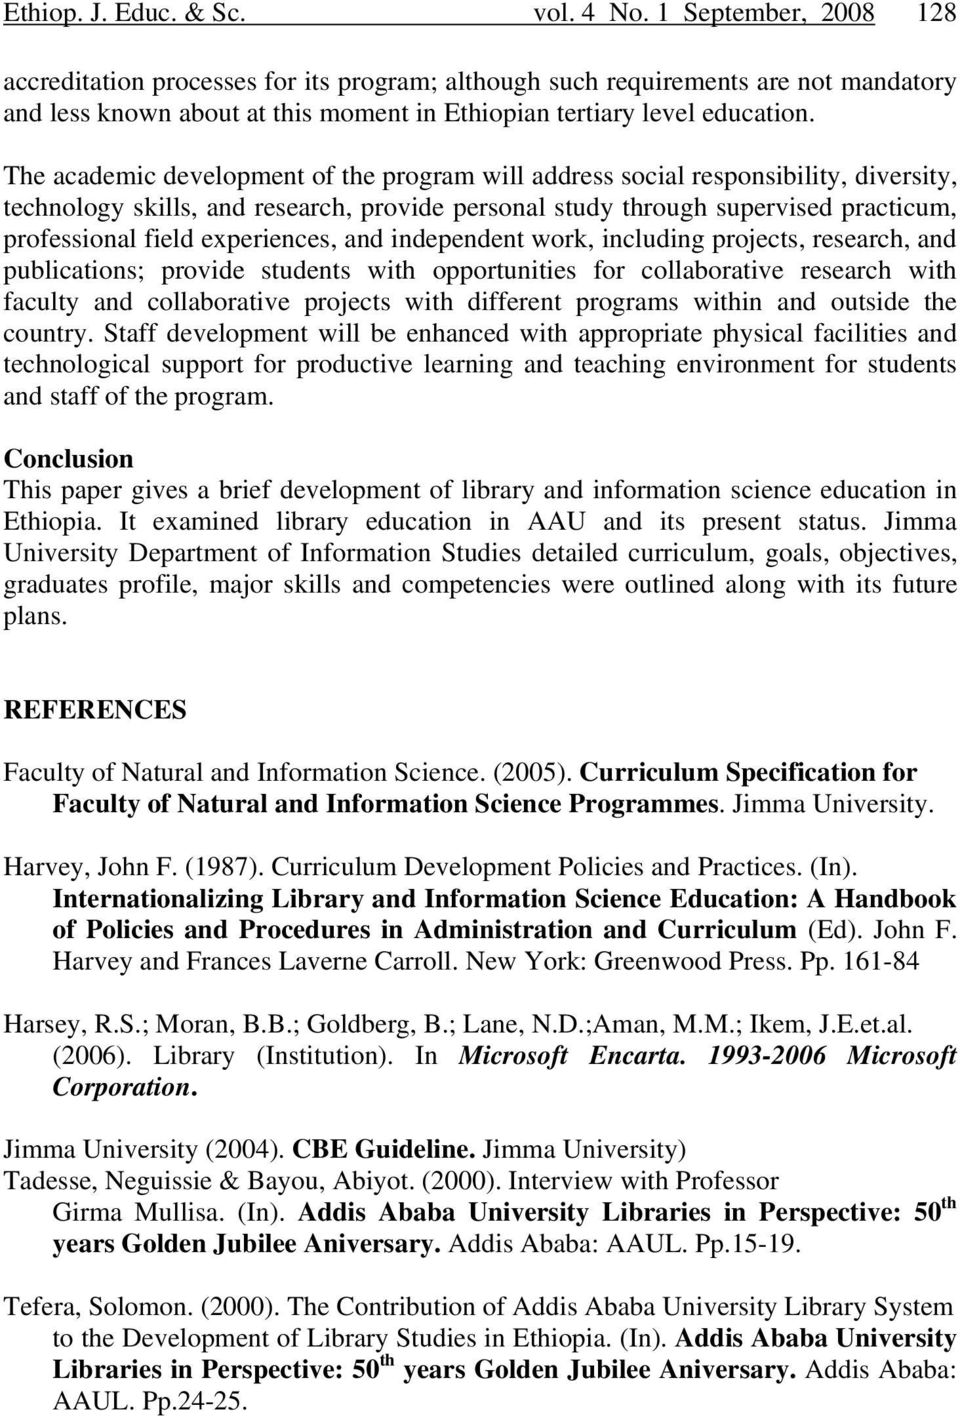 Library and Information Science Education in Ethiopia - PDF